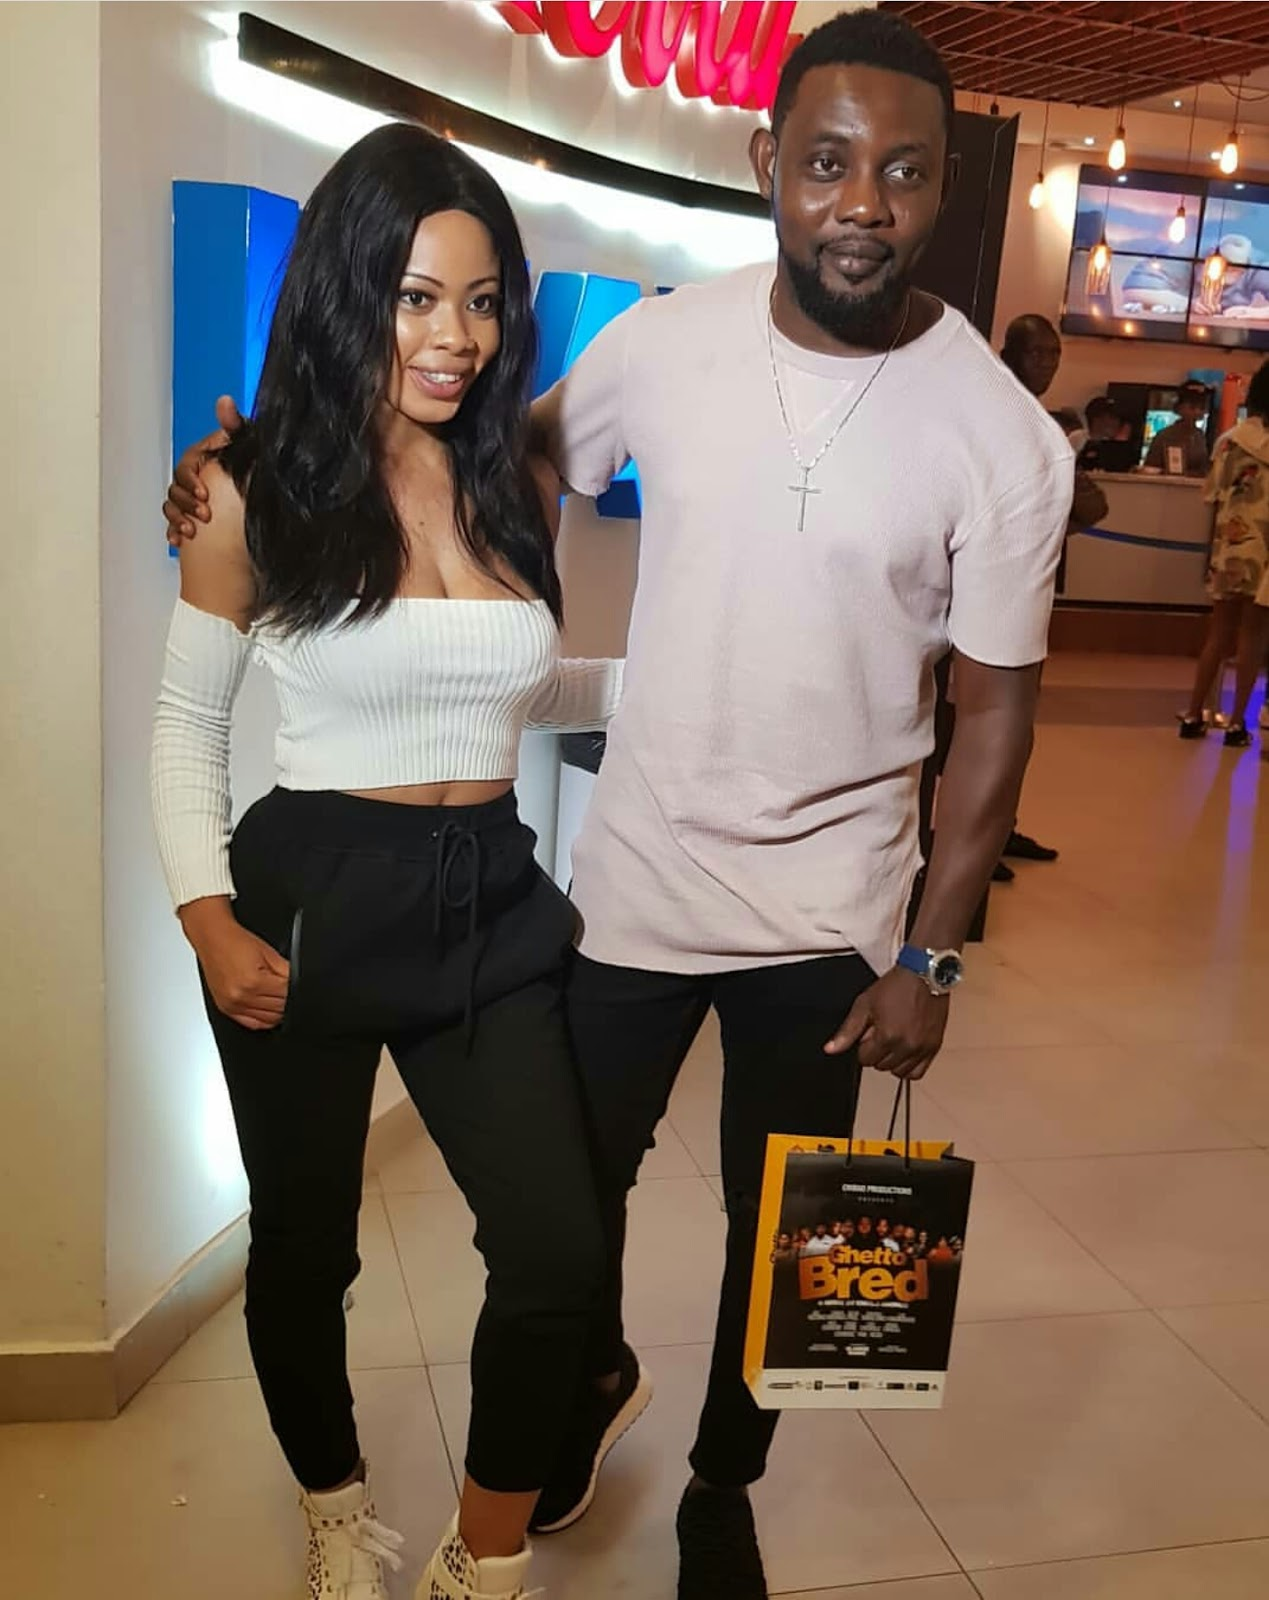 nina-pictured-with-comedian-ay-alex-ekubo-iyabo-ojo-toyin-lawani-at-the-premiere-of-ghetto-bred-photos-1